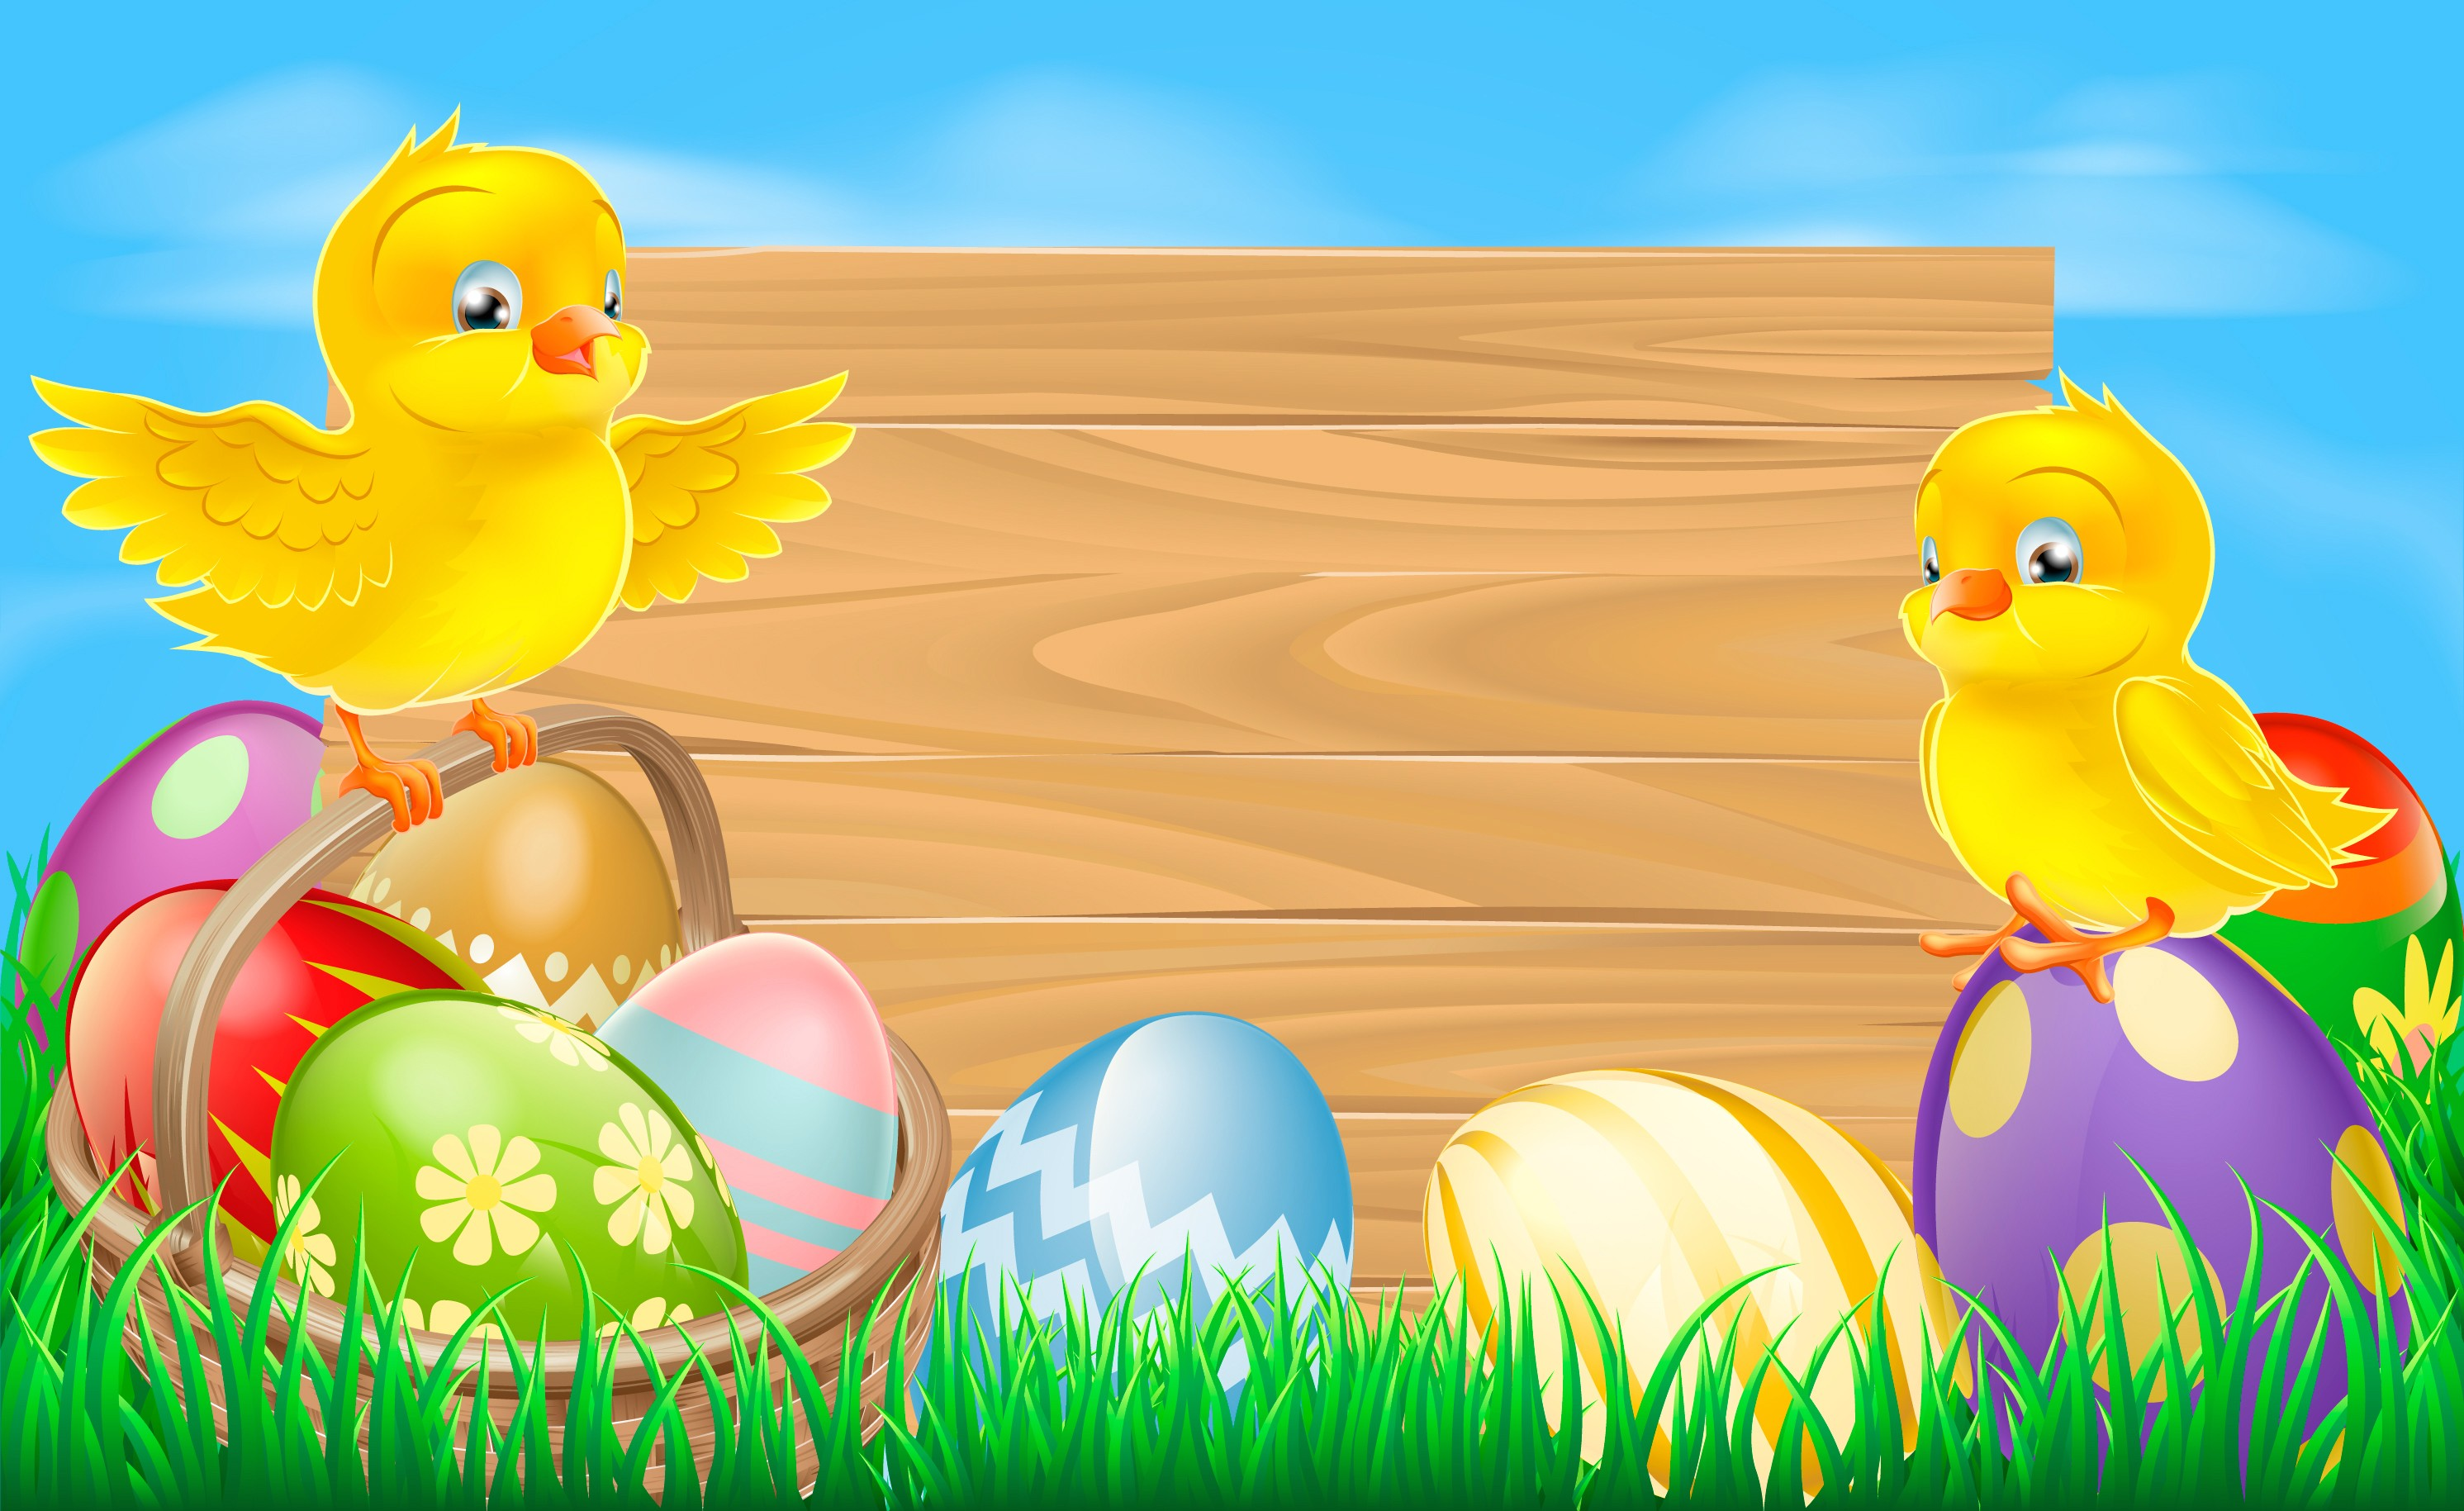 Easter background download free awesome wallpapers for - Easter desktop wallpaper ...